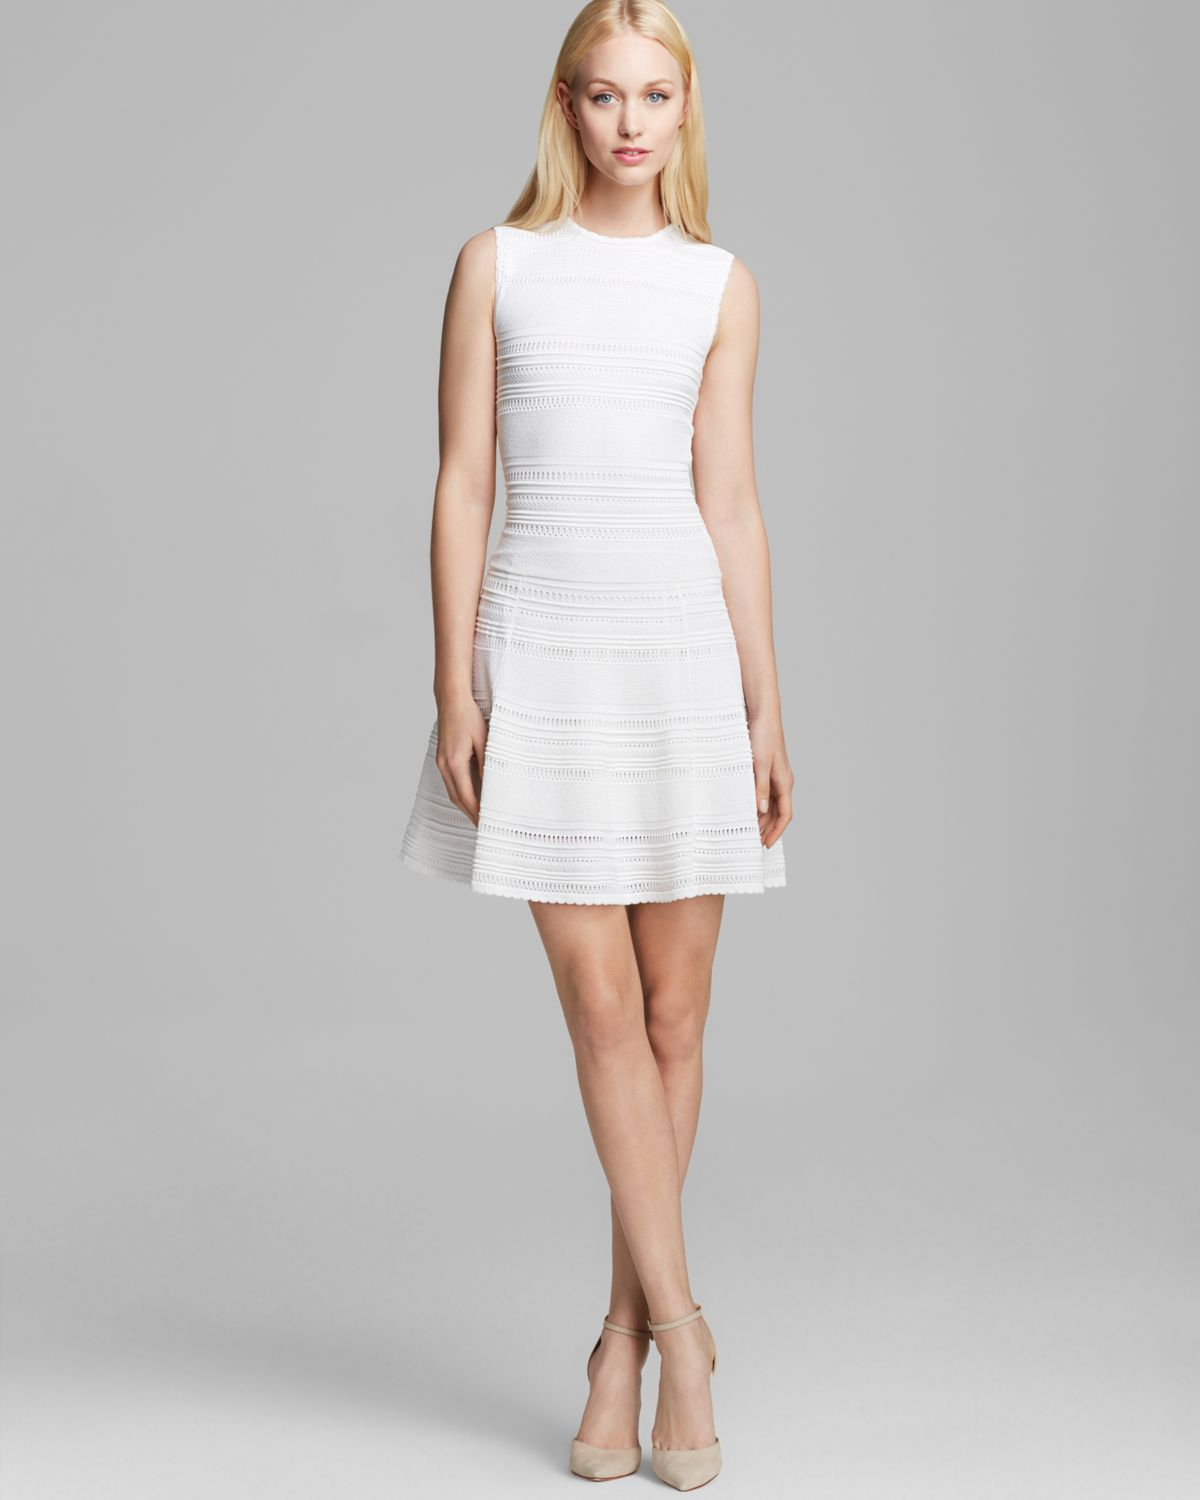 8f1949593c Lyst - Torn By Ronny Kobo Dress Isadora Classic Boho Pointelle in White